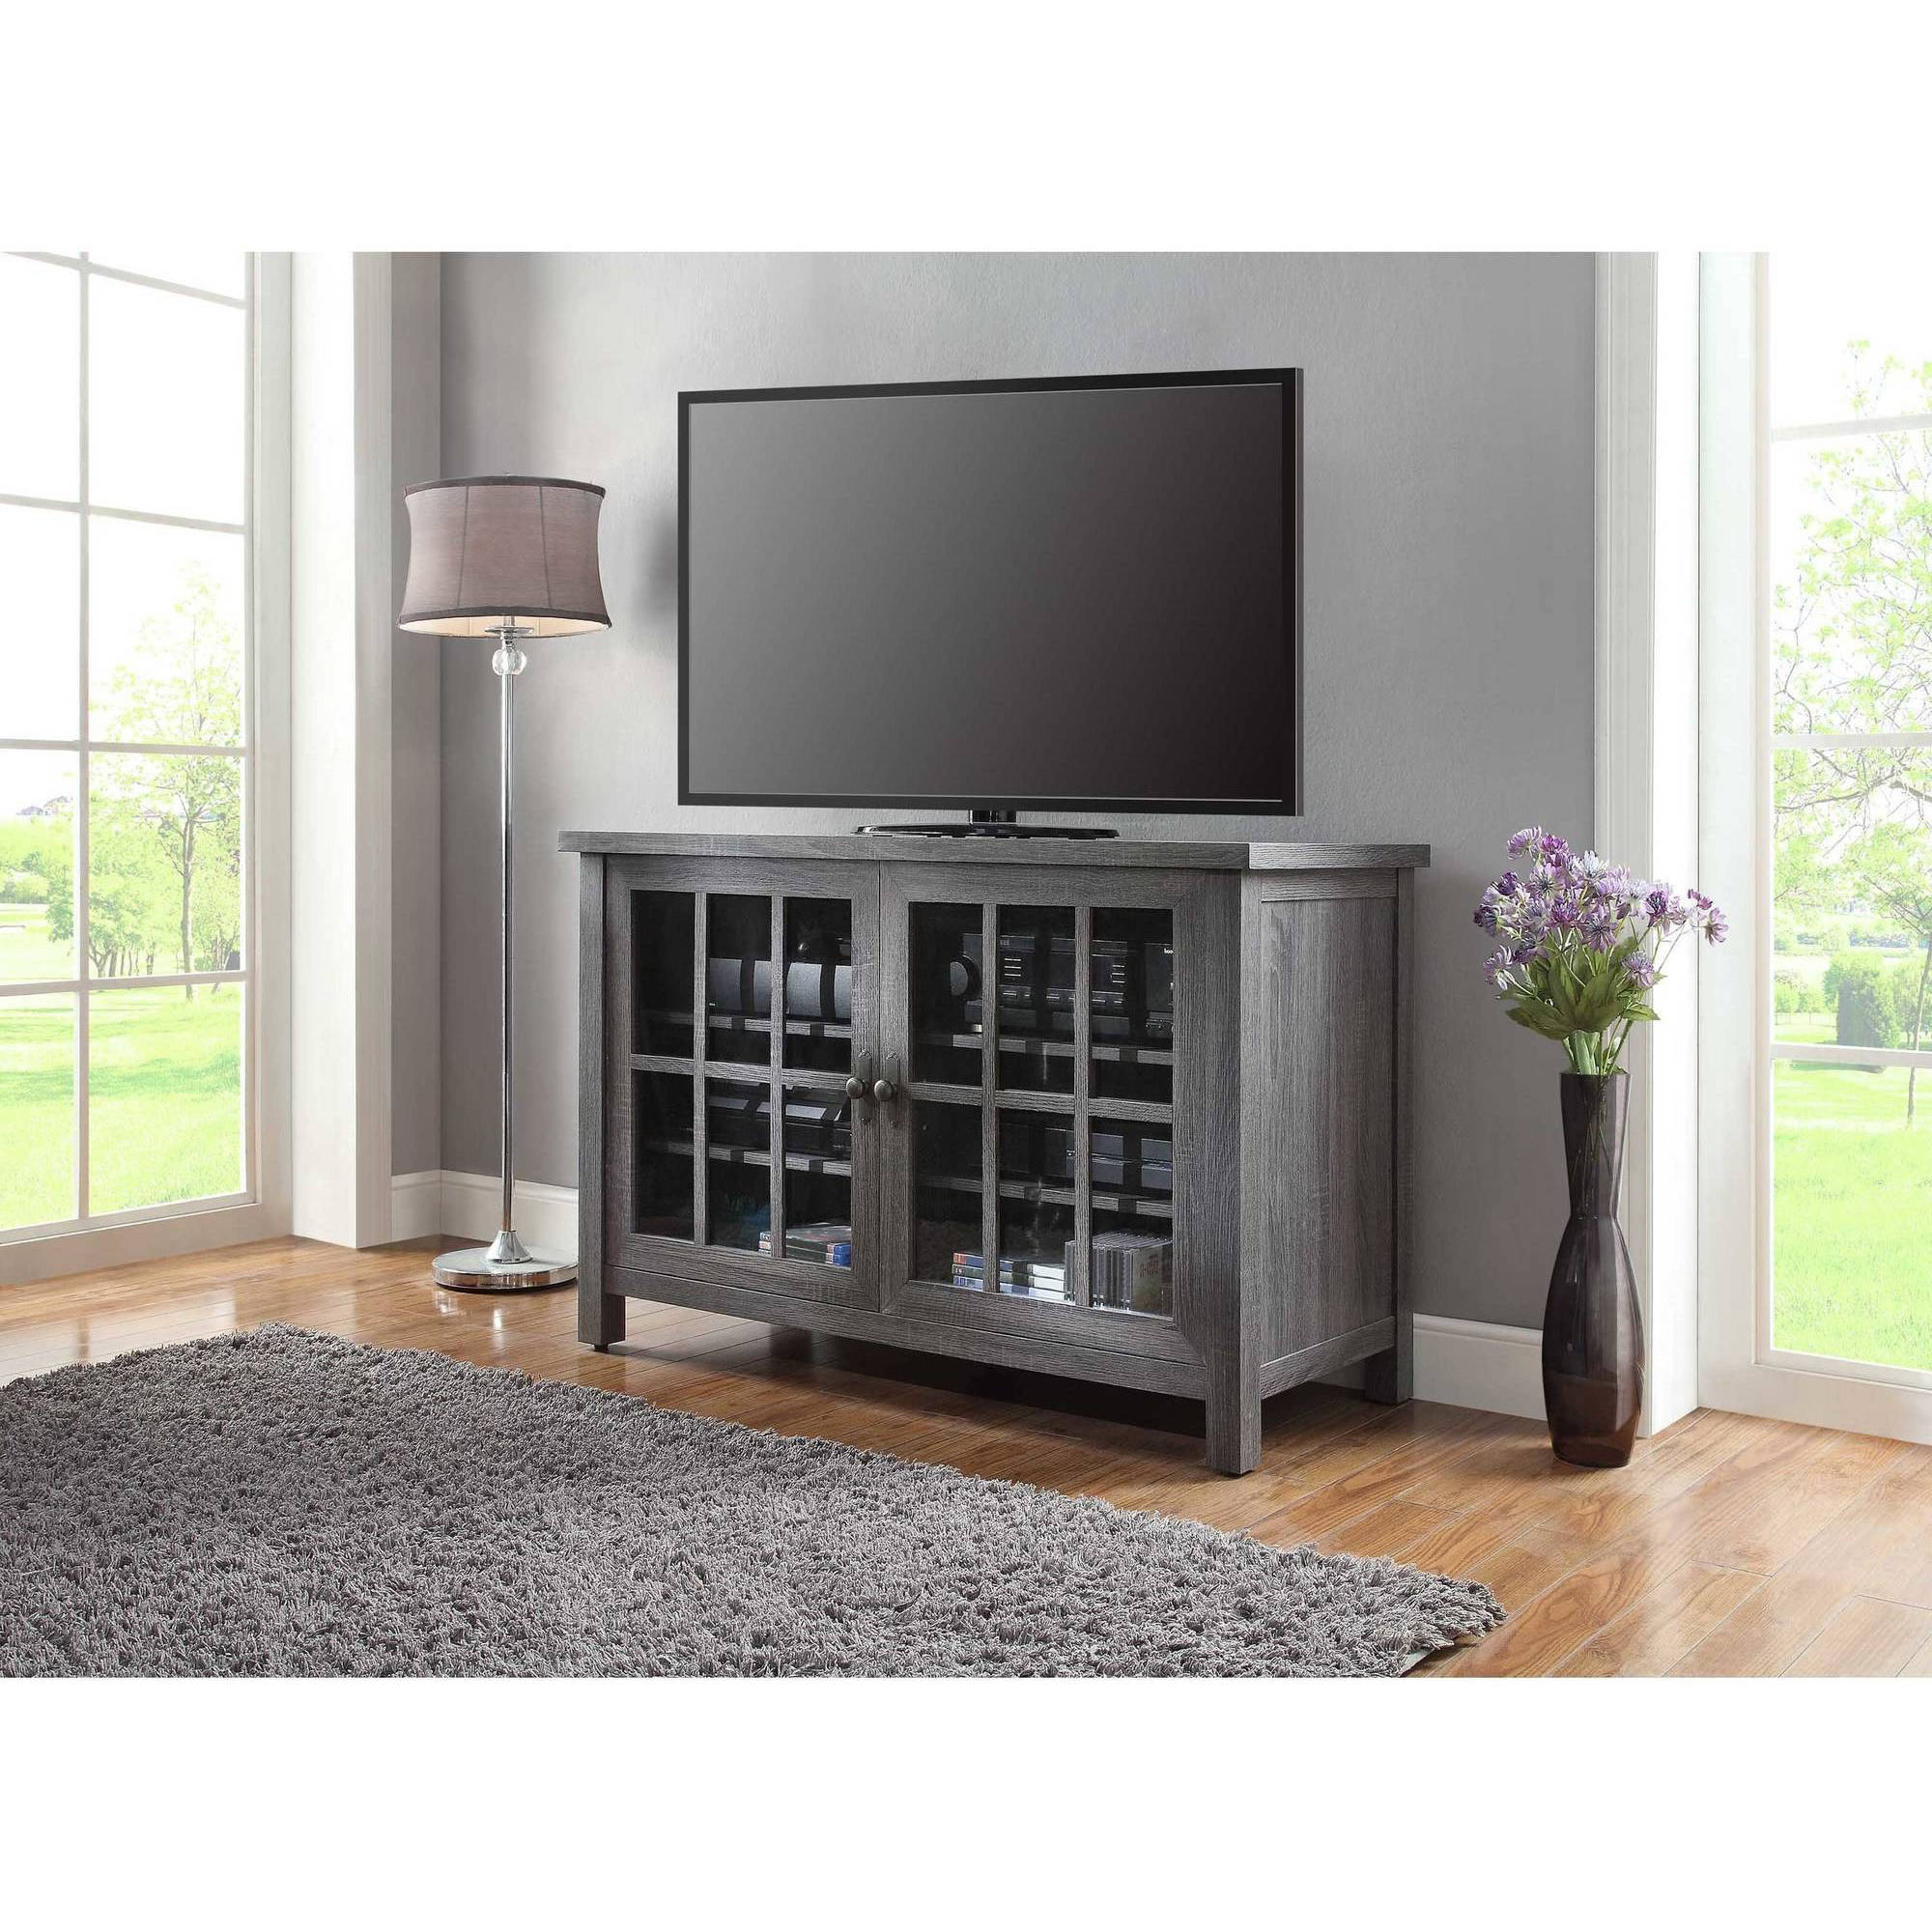 Better Homes And Gardens Oxford Square Tv Console For Tvs Up To 55 Pertaining To Oxford 60 Inch Tv Stands (View 9 of 20)